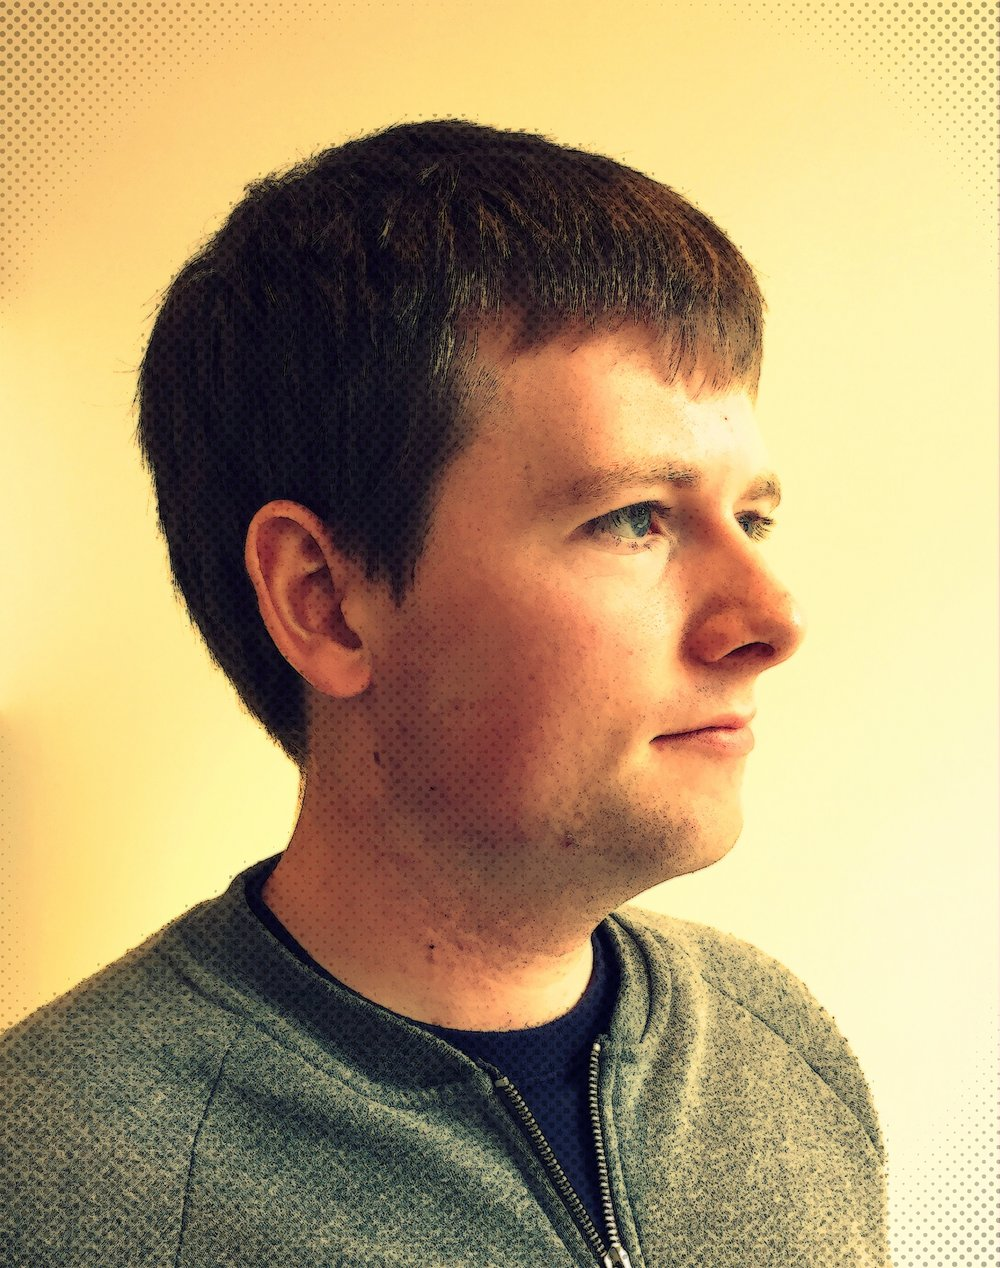 James Byrne - Software Engineer Since joining the team in mid-2016, James has been the motor at the centre of our software development. A programming polymath, he has worked across multiple languages to build our products. His hallmark is 'think twice, code once'.     LinkedIn: James Byrne Twitter: @jamesdesbyrne